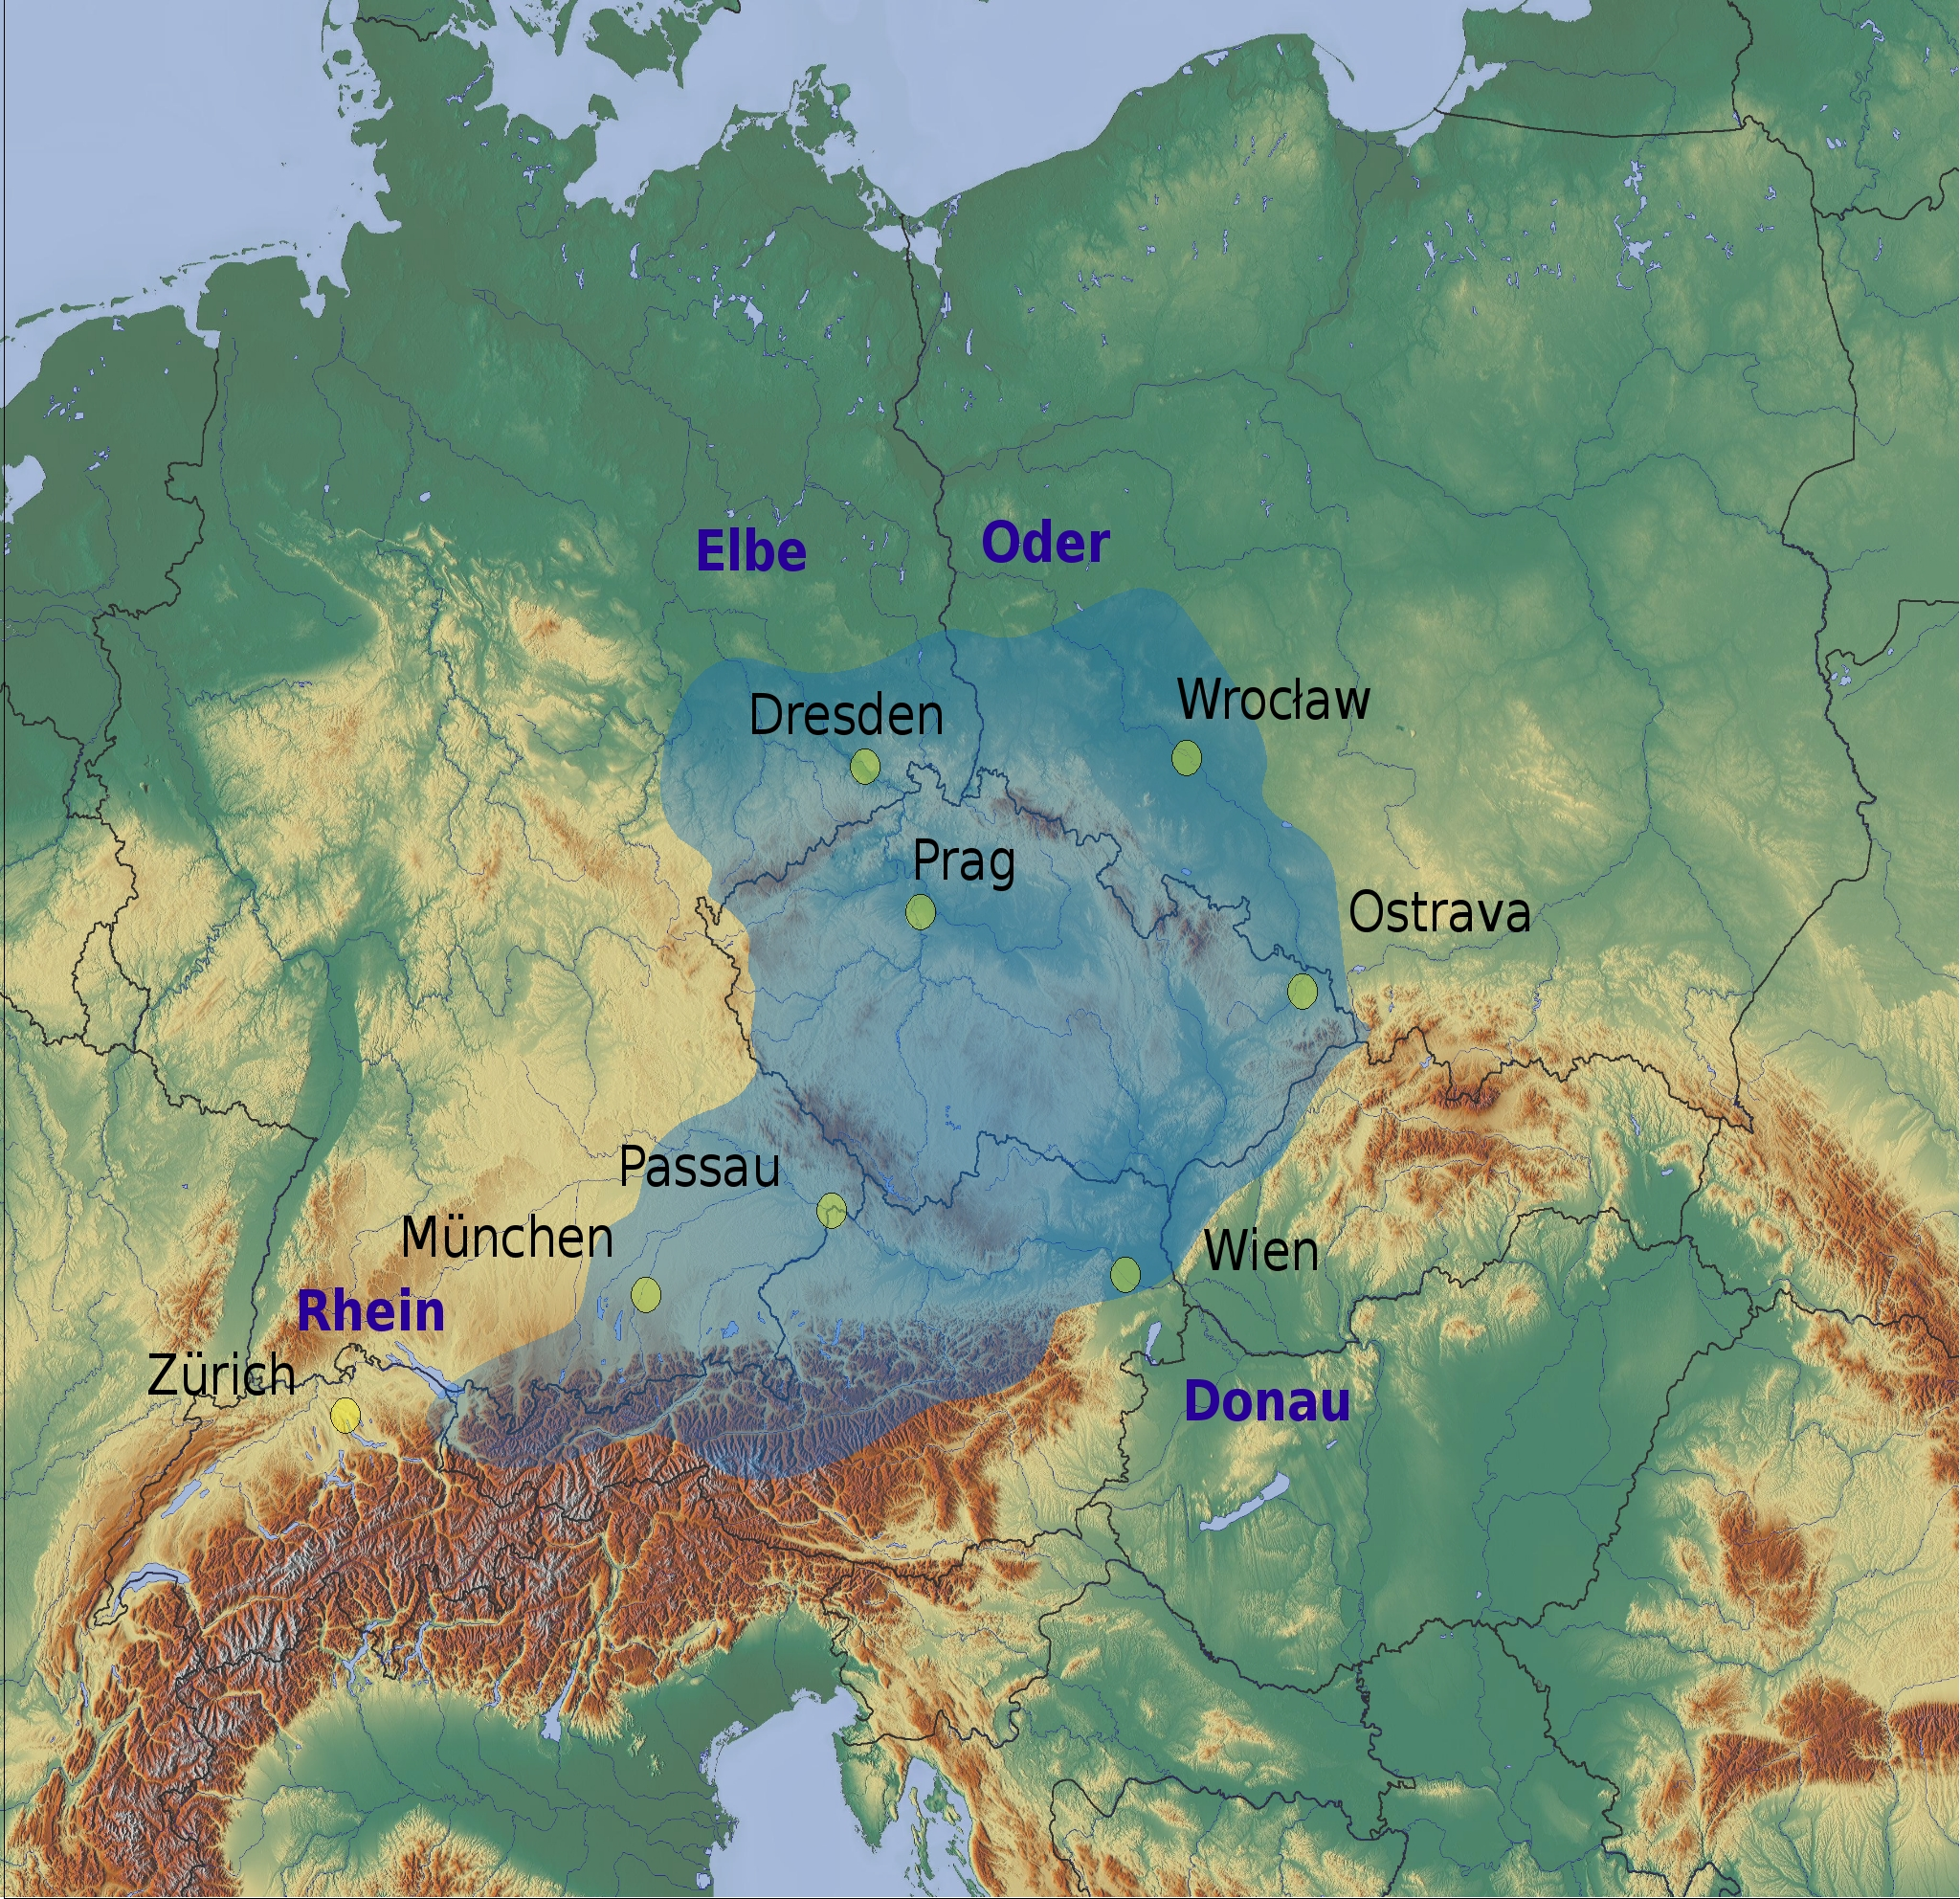 map of central europe 2013 File:Central Europe relief map with 2013 rain.   Wikimedia Commons